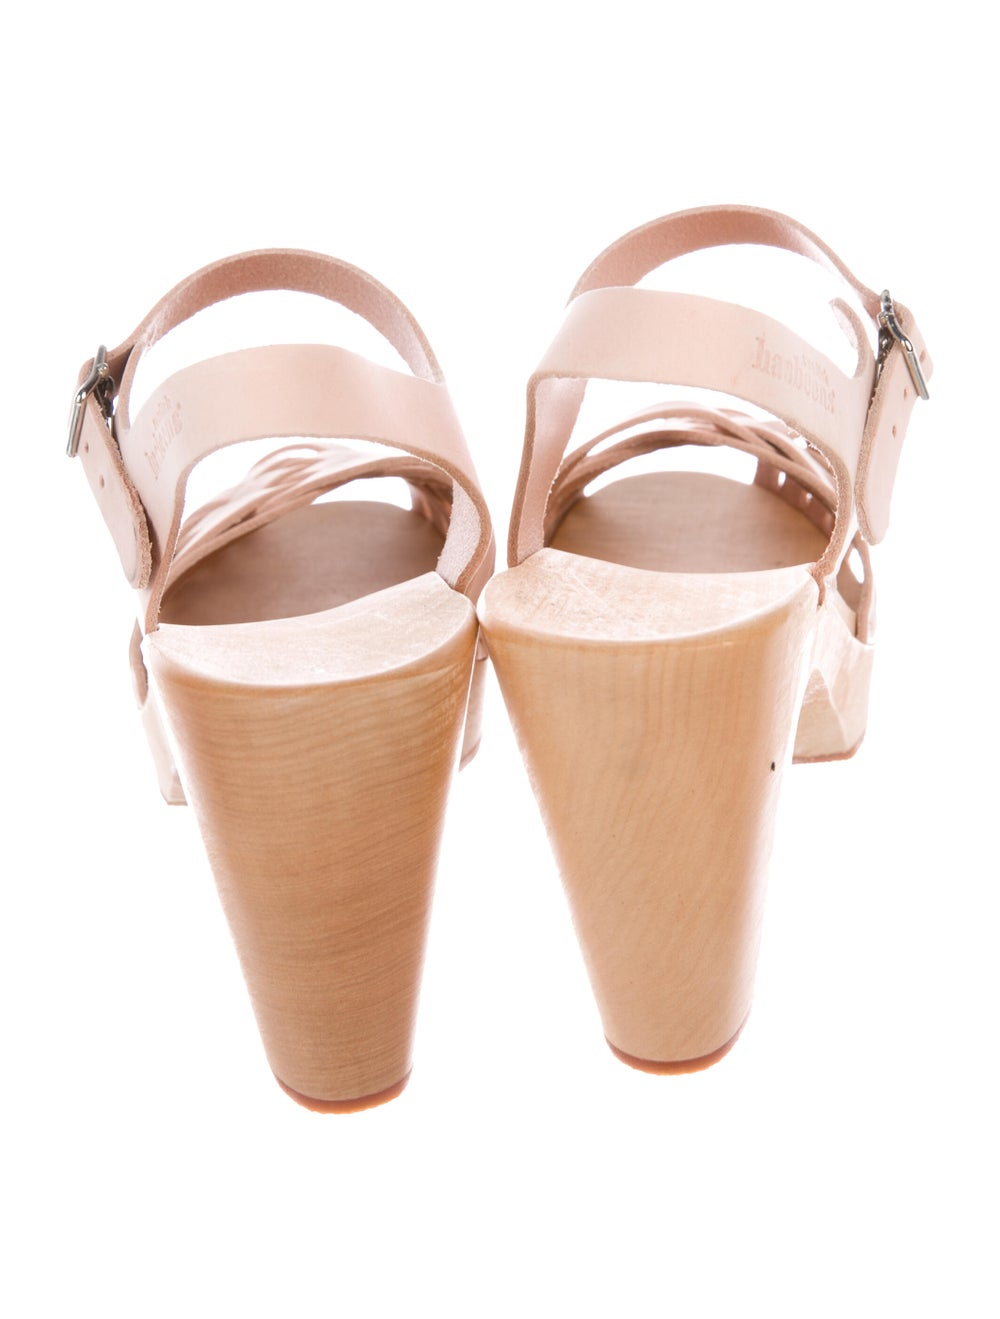 Swedish Hasbeens Leather Sandals Pink - image 4